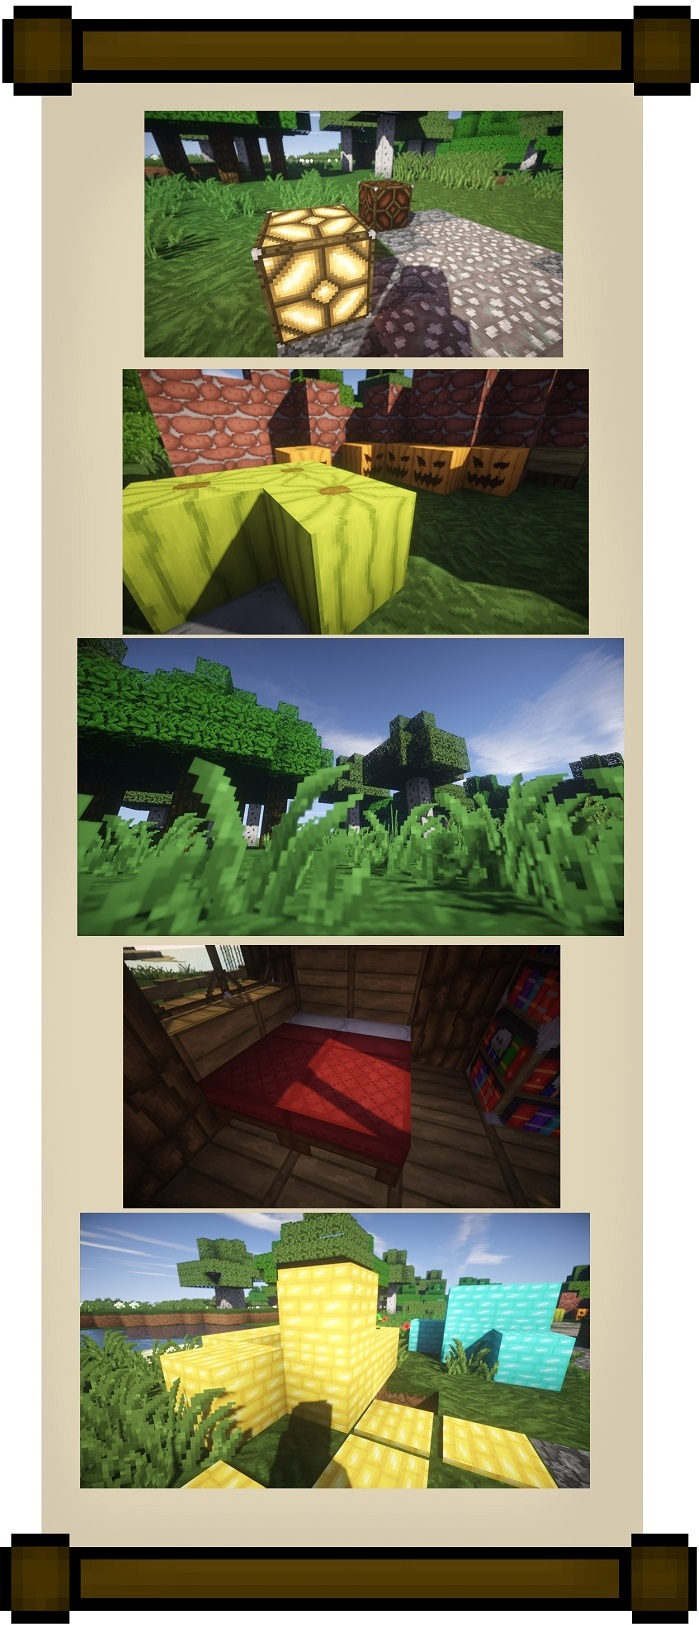 e8c05  blackcraft resource pack 1 [1.10] [32x] BlackCraft Texture Pack Download